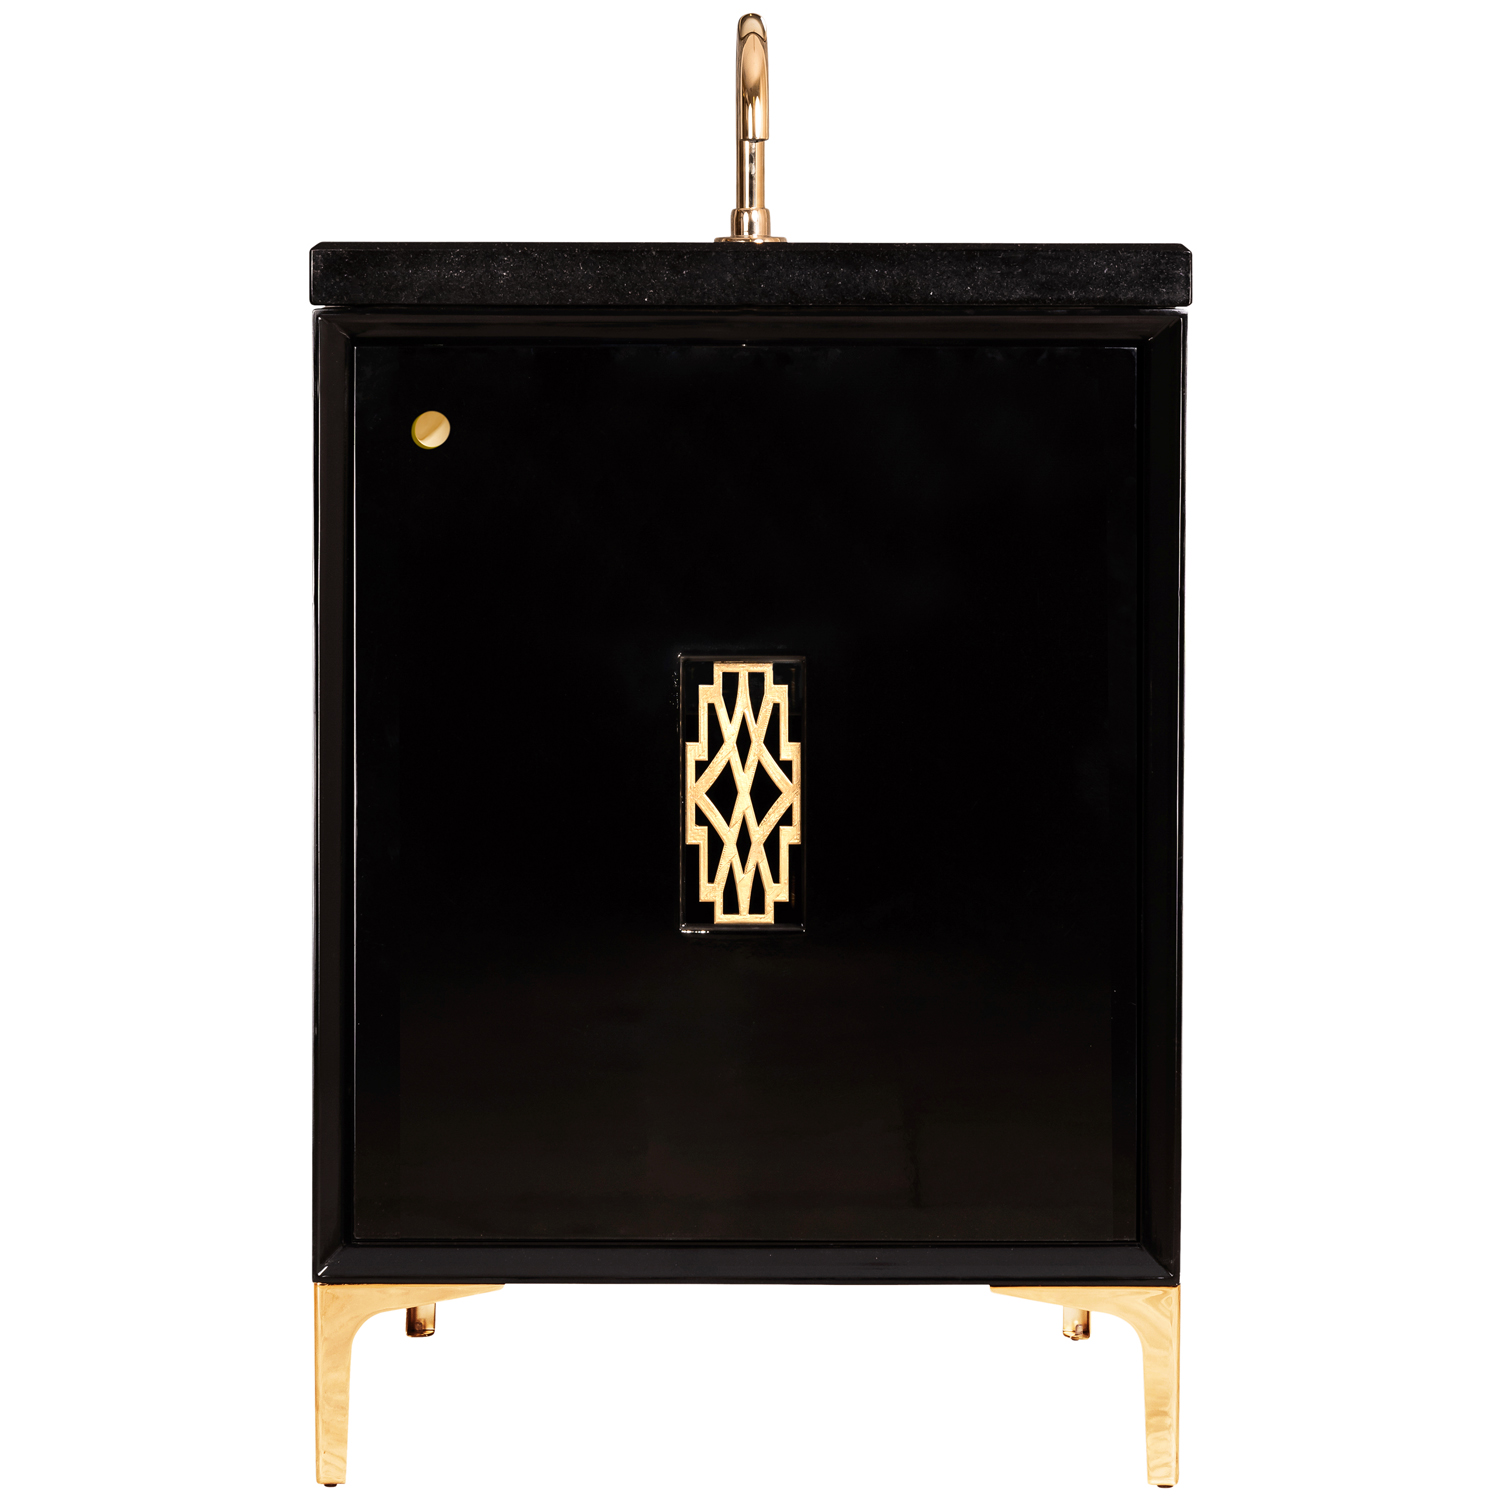 "VAN24B-0011 24"" Black Frame With Deco - Shown with PB (Polished Brass)"